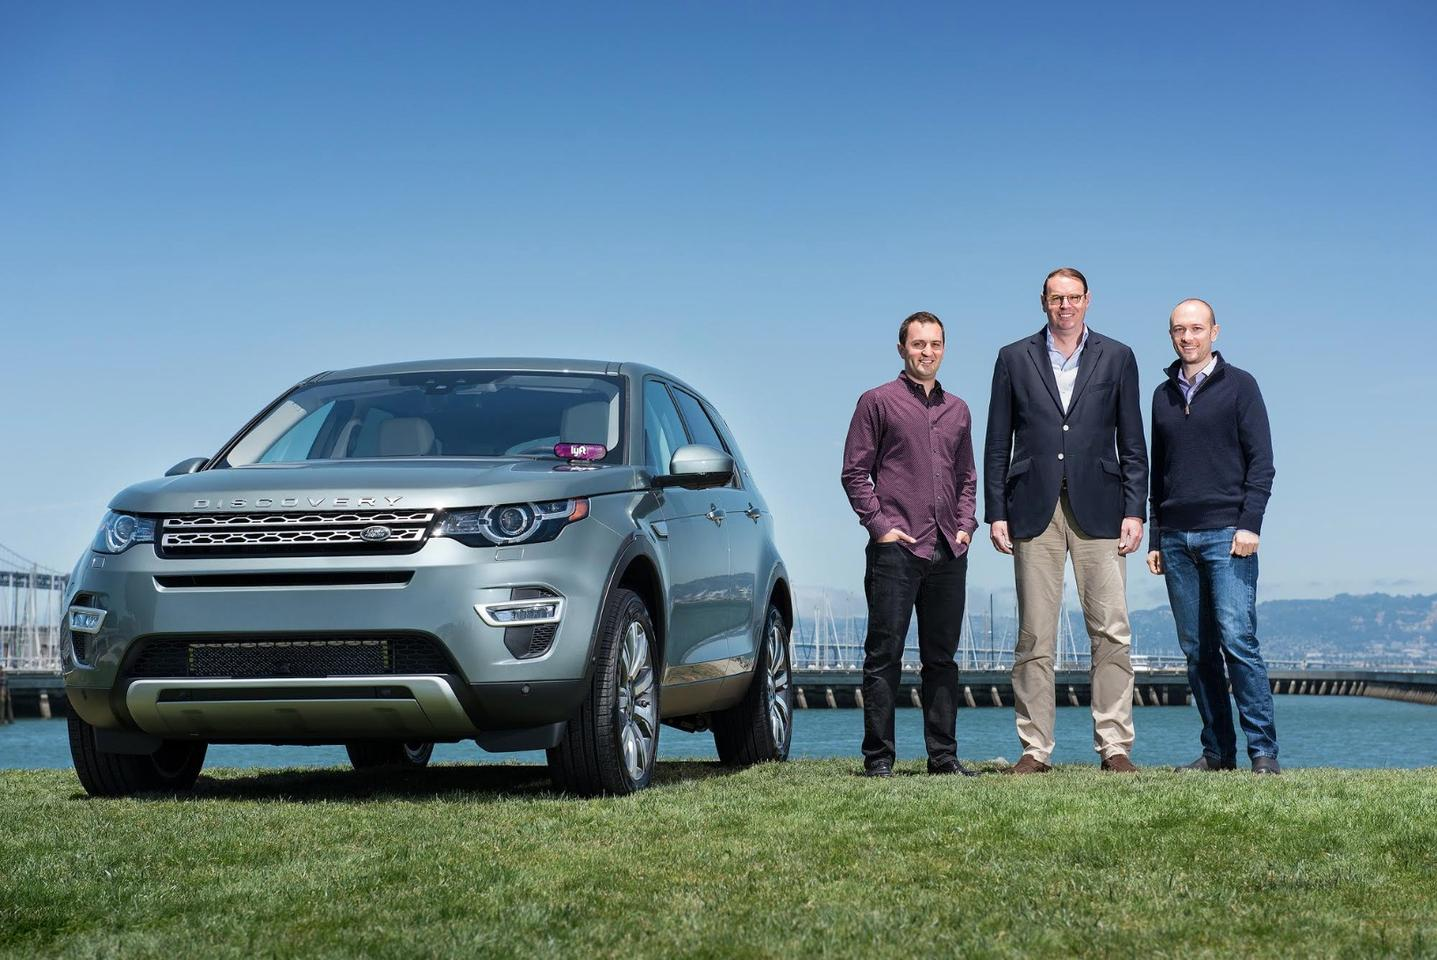 Jaguar Land Rover has invested US$25 million in Lyft through its InMotion mobility services business